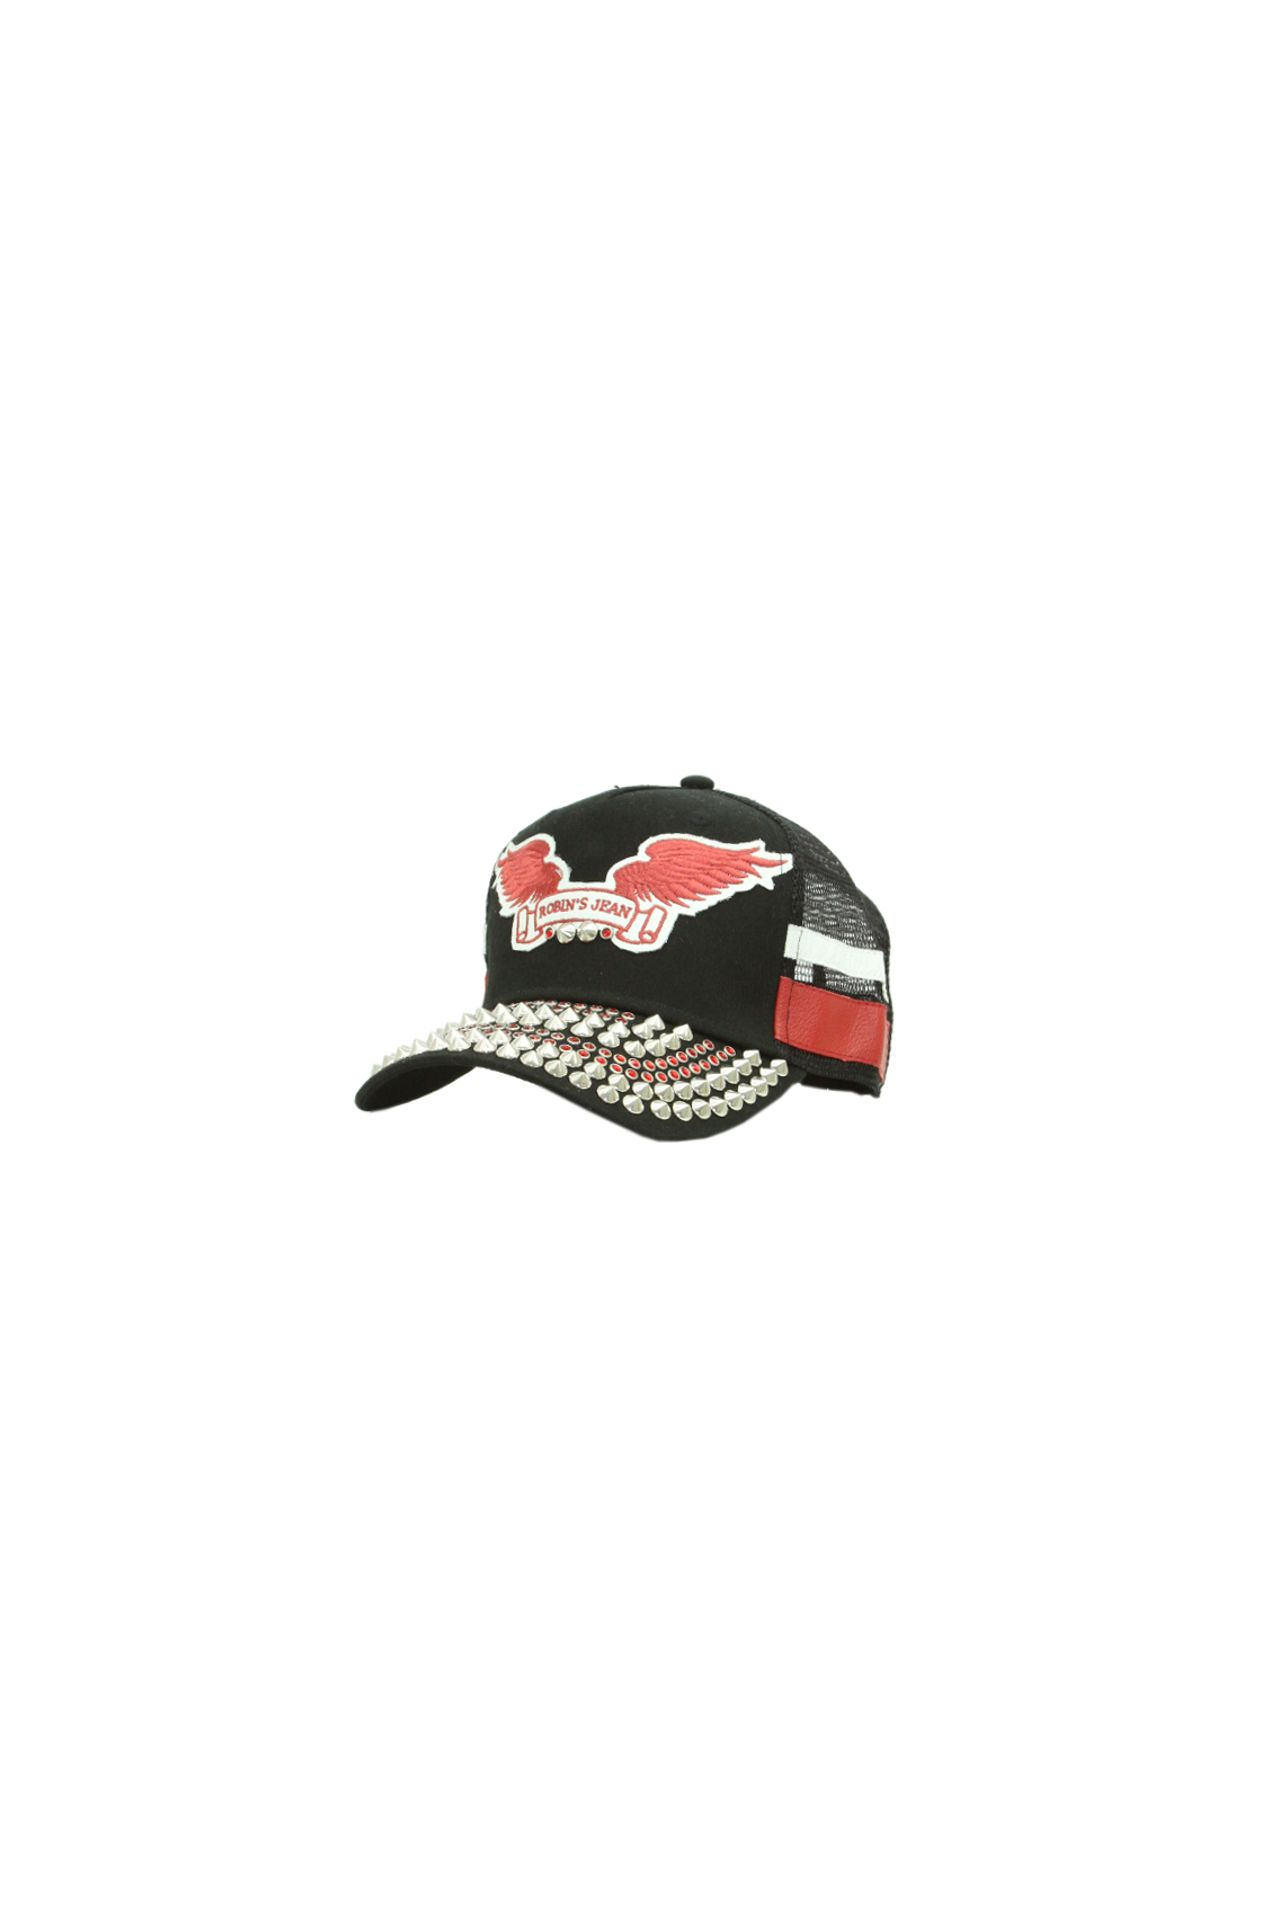 STUDDED BLACK CAP RED WINGS